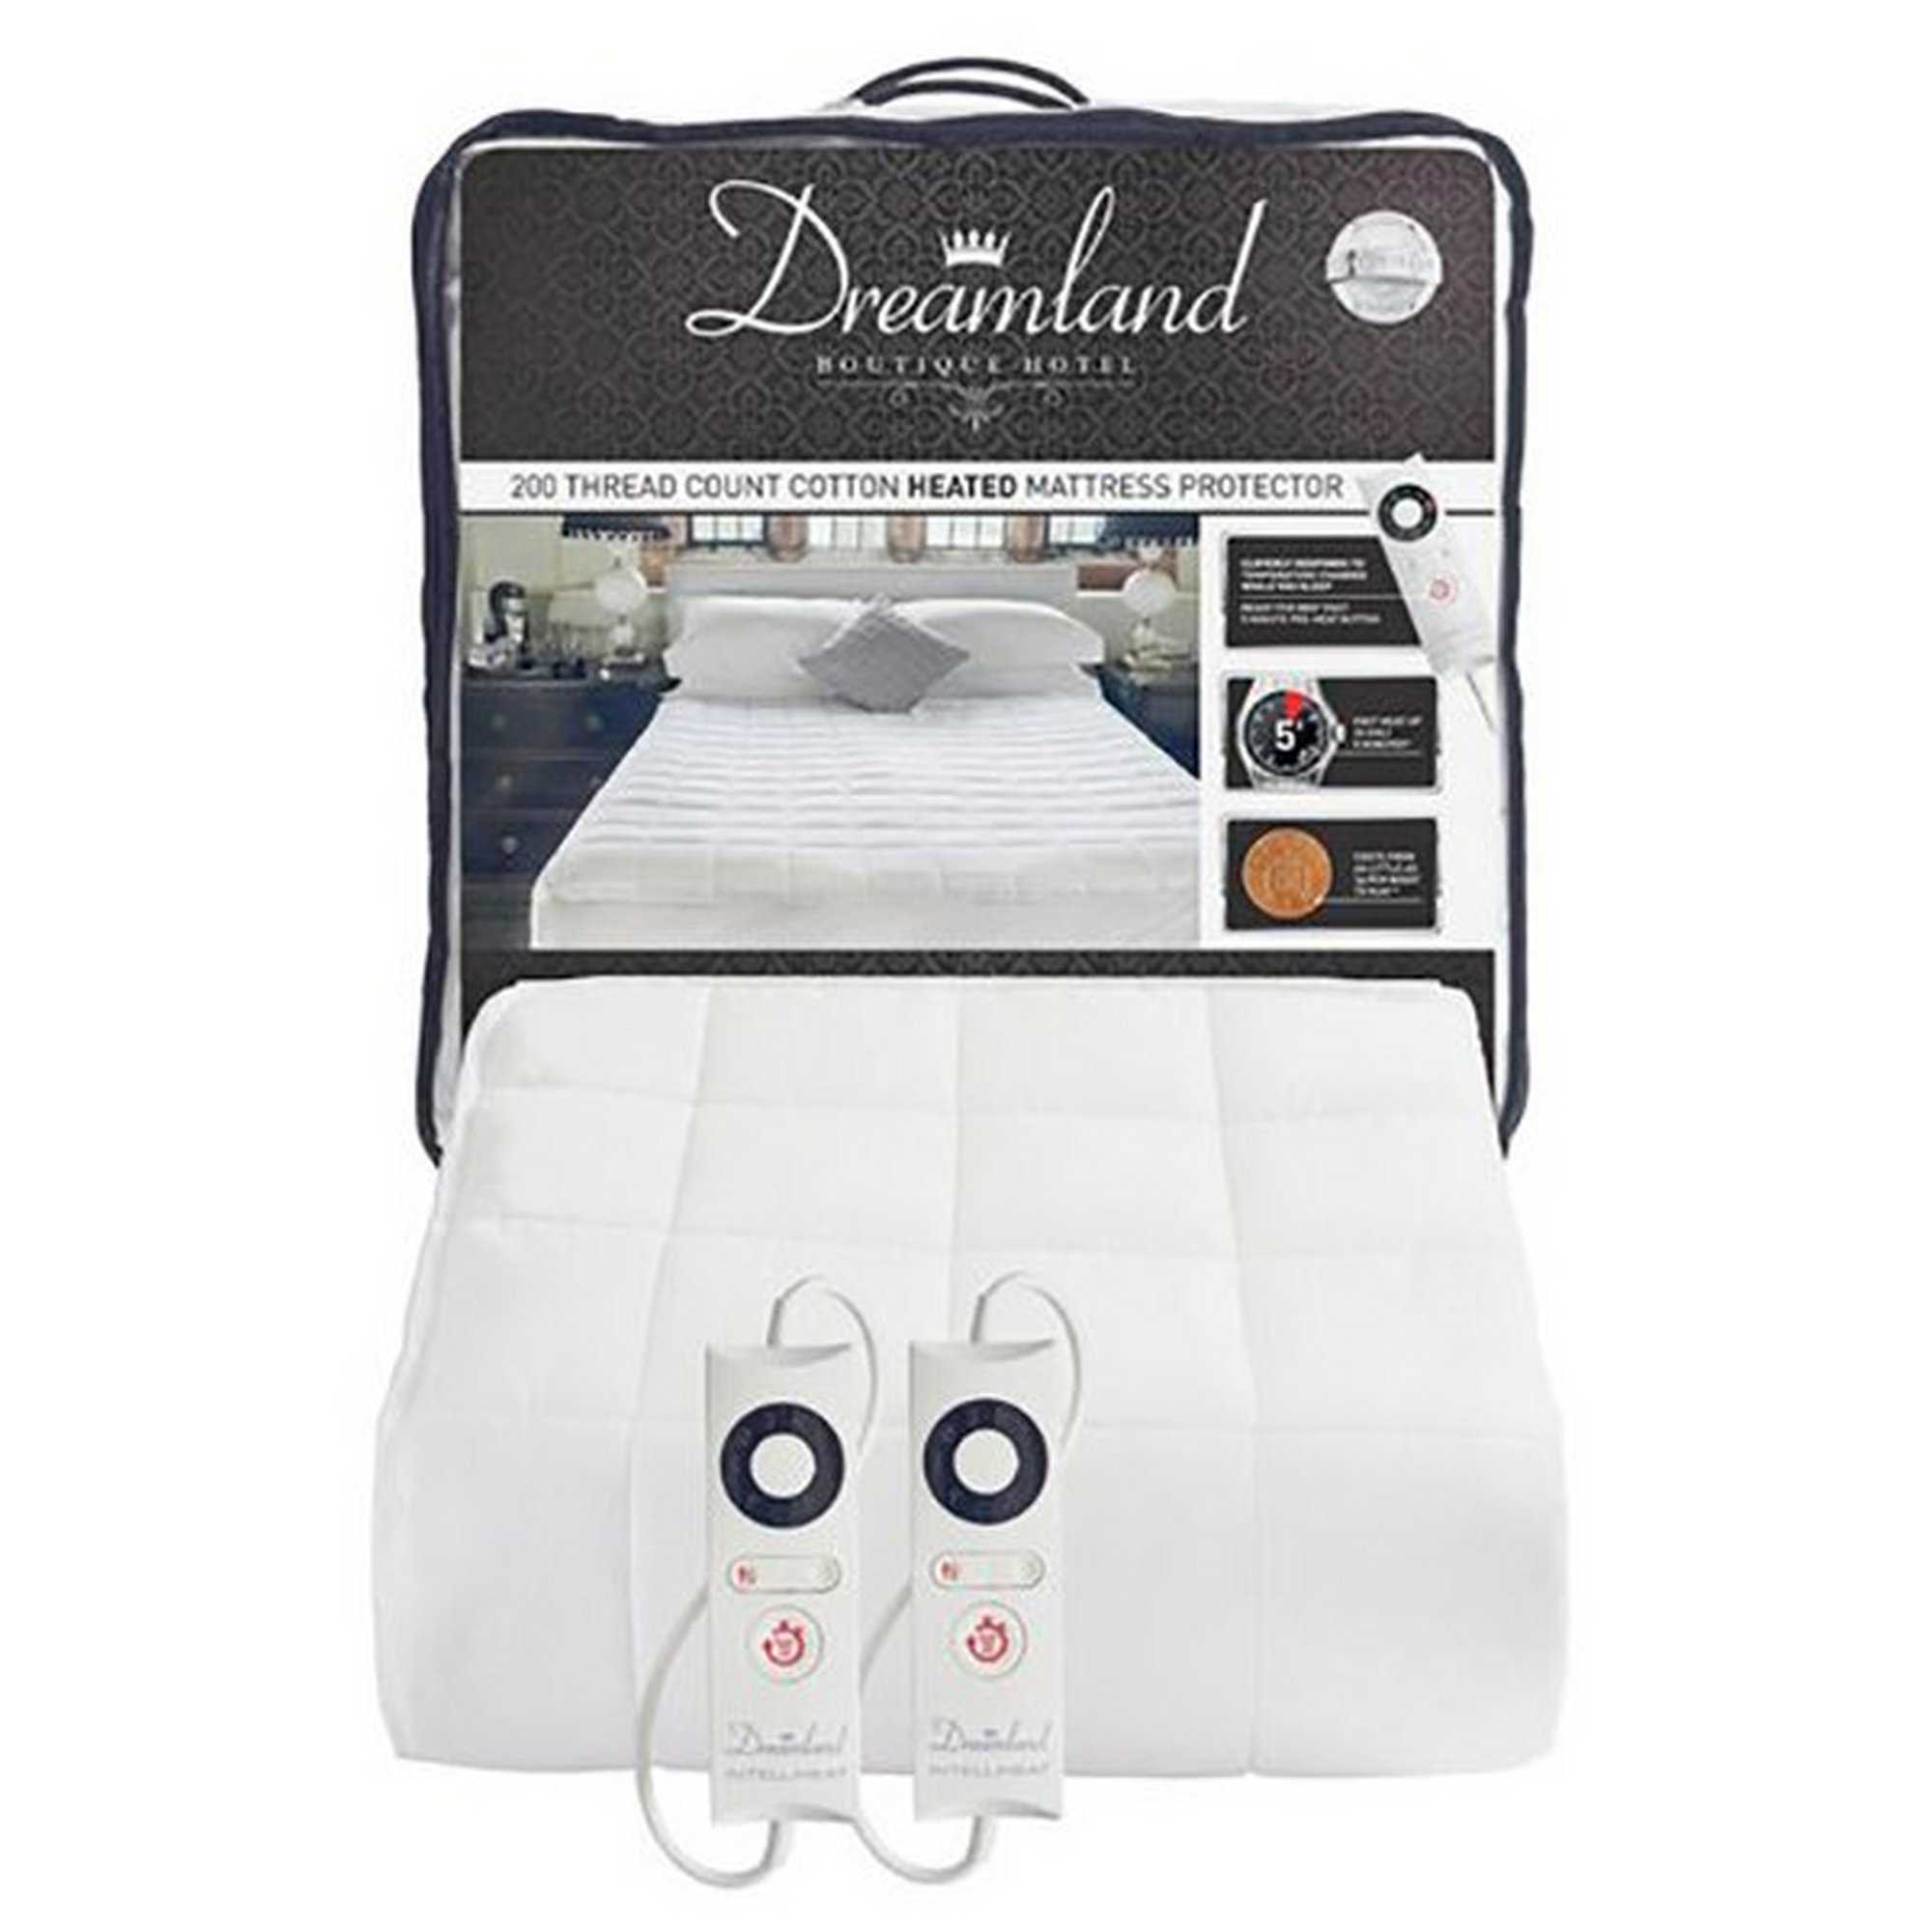 Image of Dreamland Boutique Dual Heated Mattress Protector